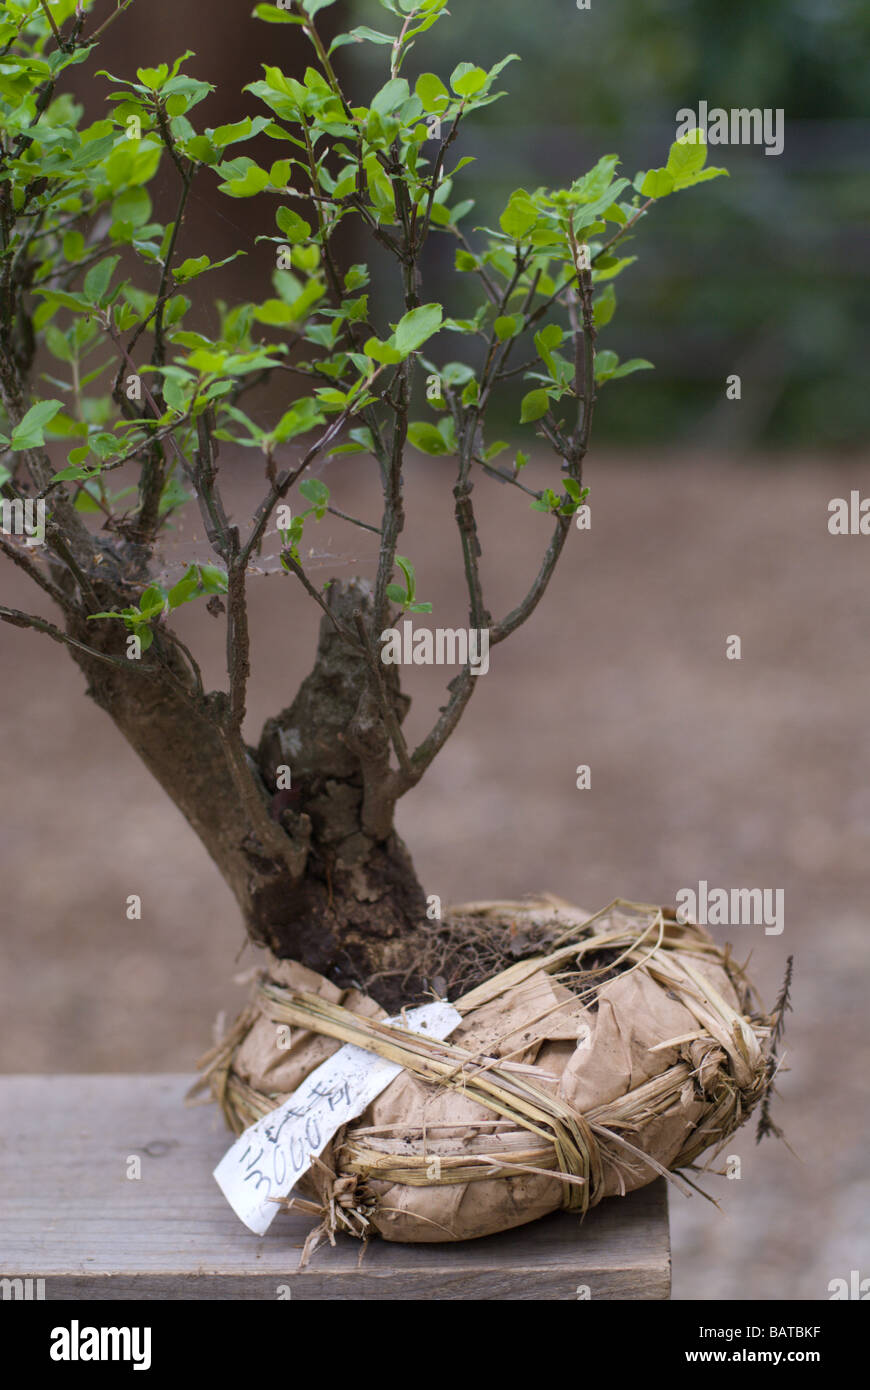 A Bonsai Style Tree With Roots Wrapped And Ready For Transplanting Stock Photo Alamy